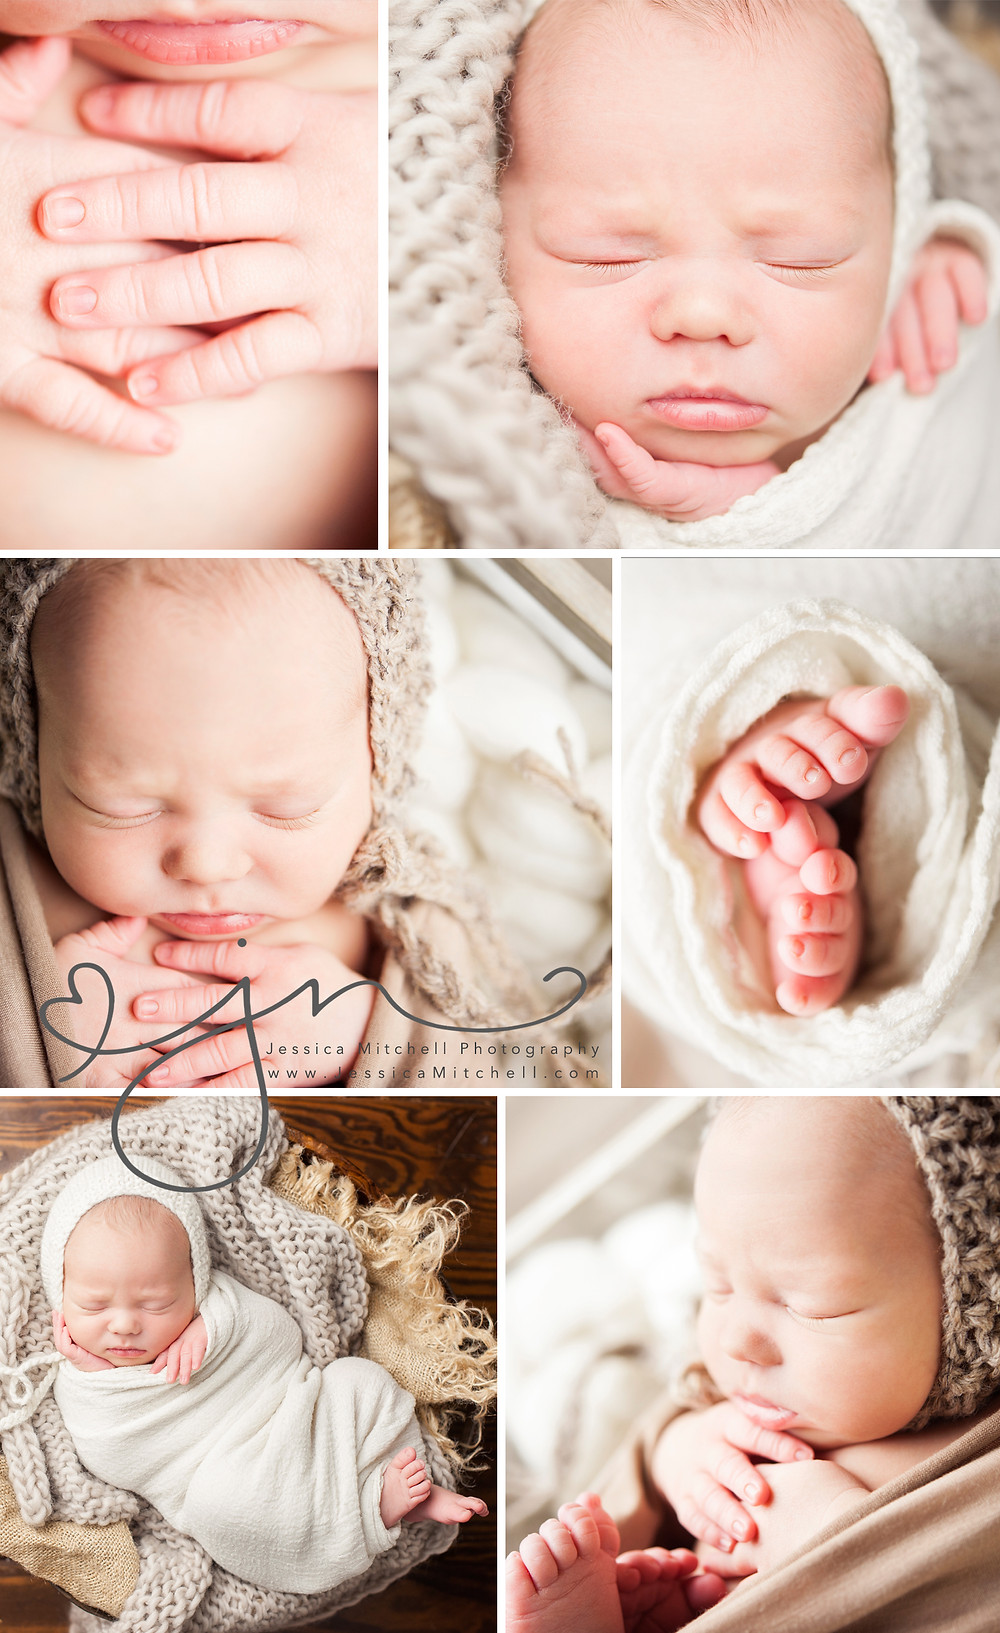 Newborn Photography Austin Tx | Jessica Mitchell Photography | Baby boy newborn posing